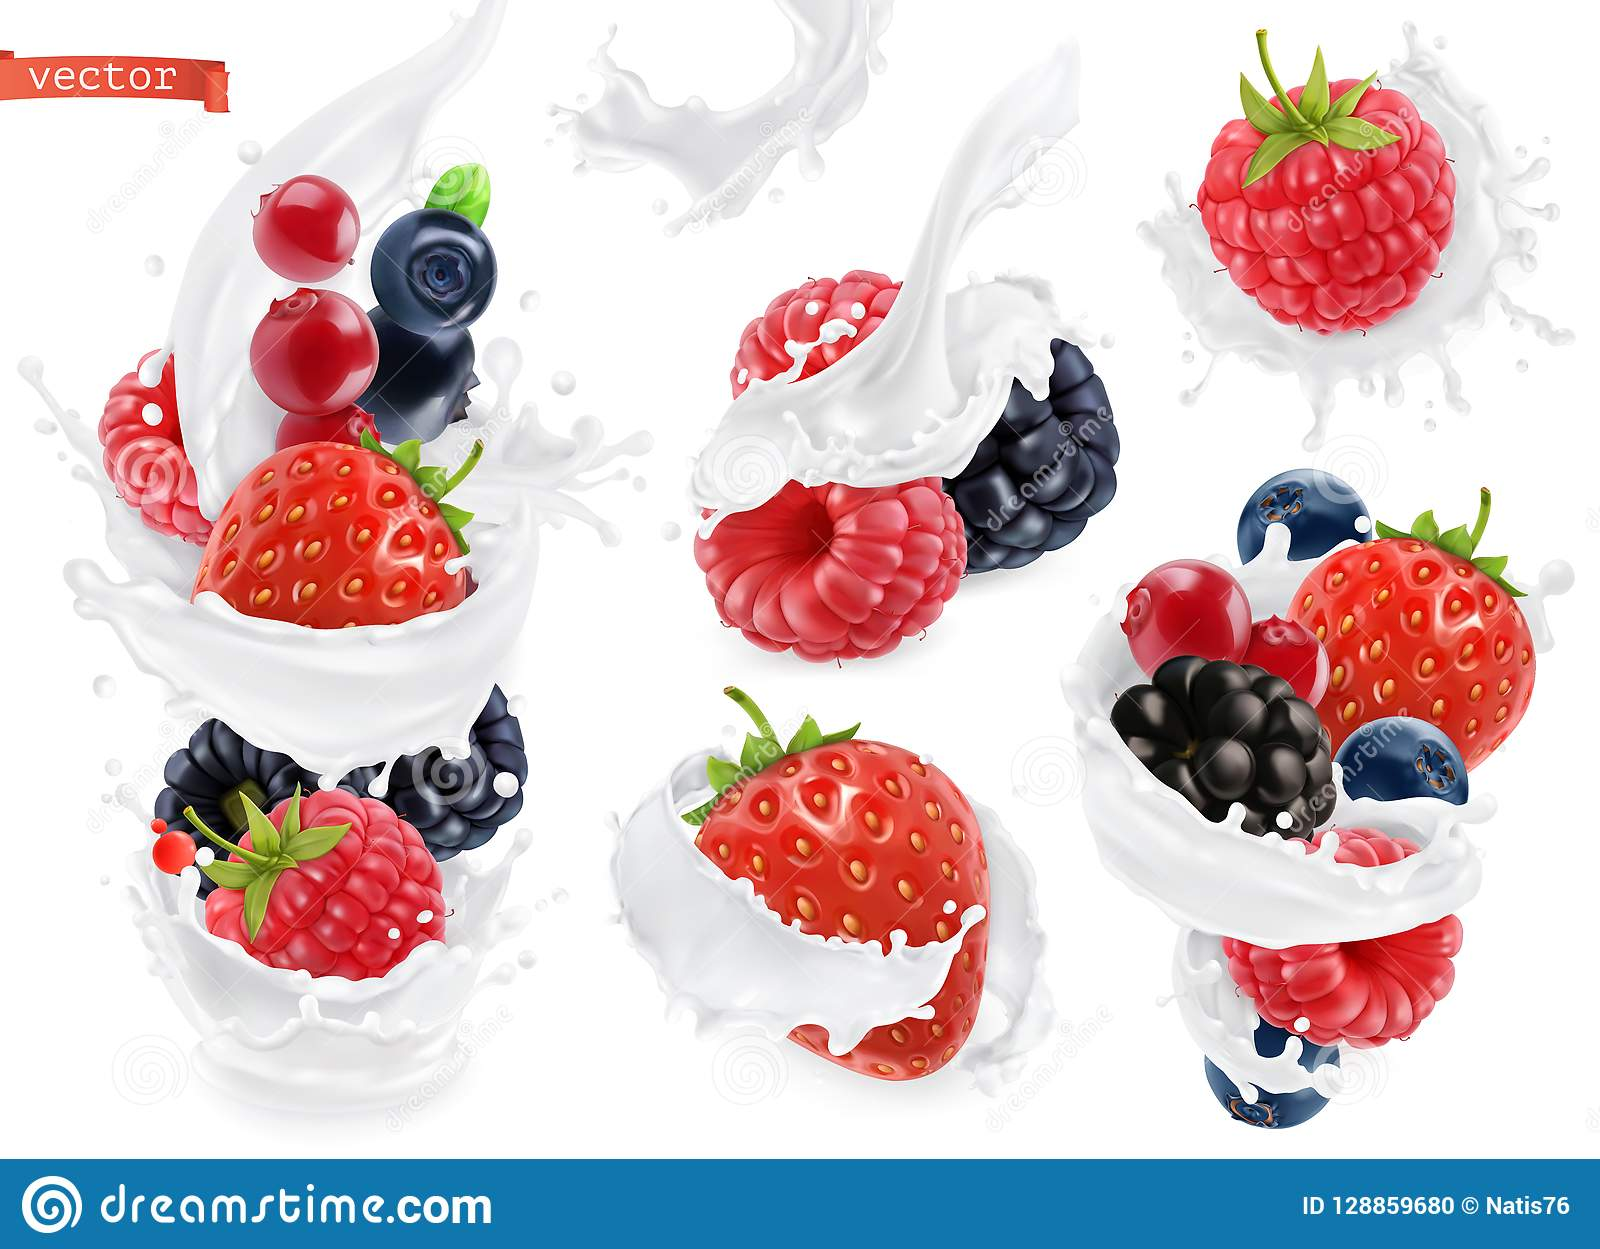 Forest fruit yogurt. Mixed berry and milk splashes. 3d vector